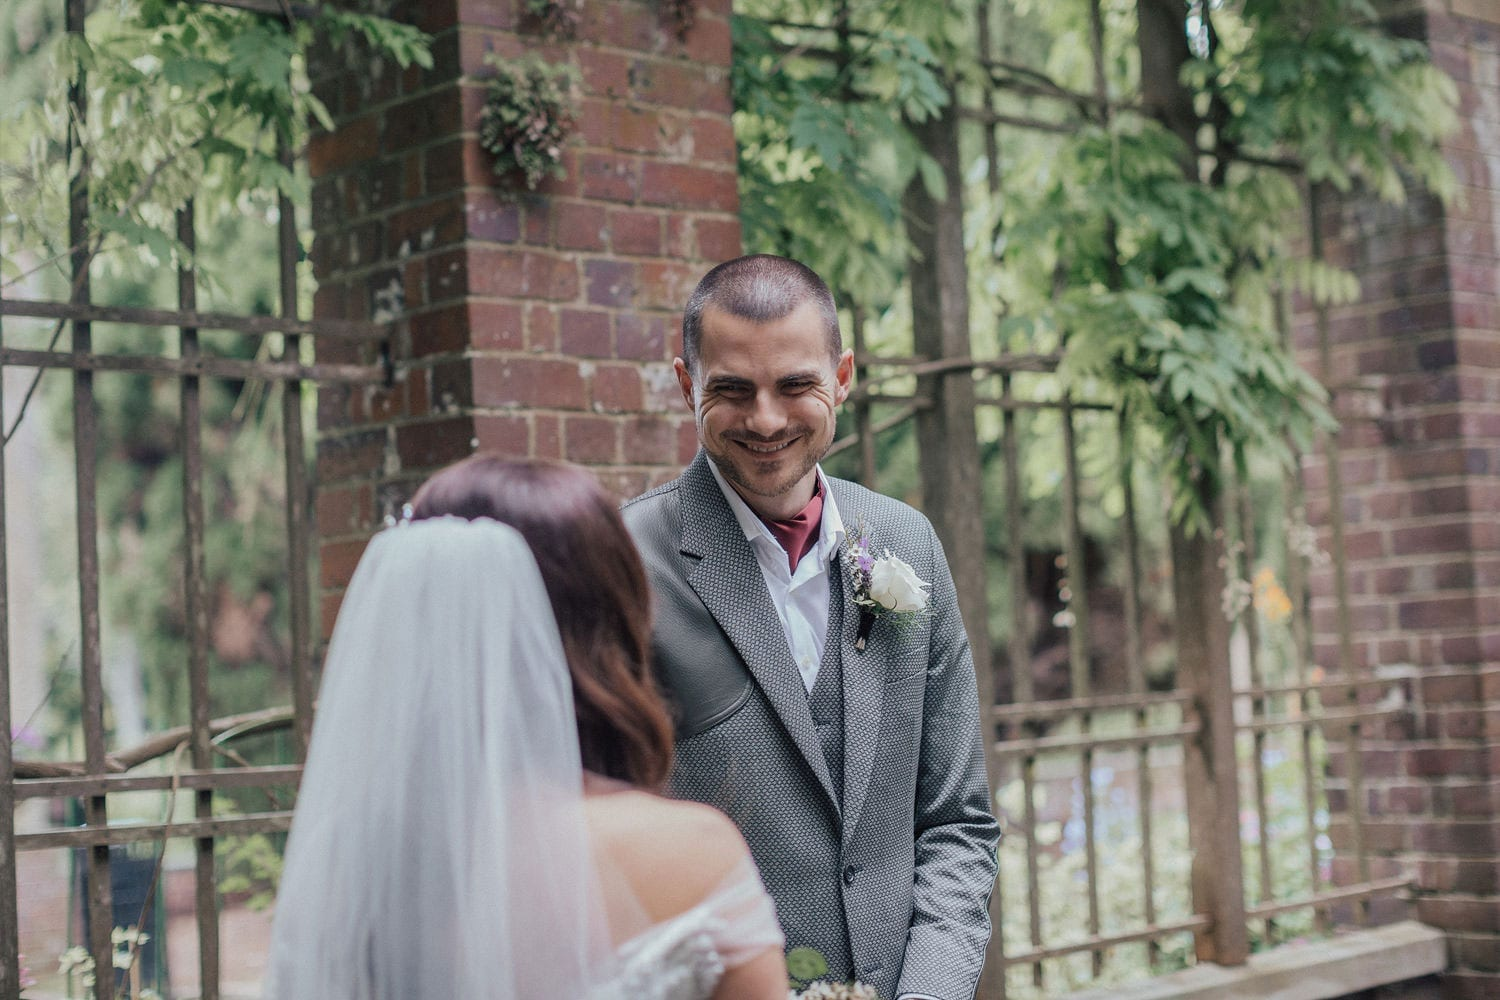 Vinka Design Features Real Weddings - bride wearing custom made lace wedding gown. Smiling groom looks at bride